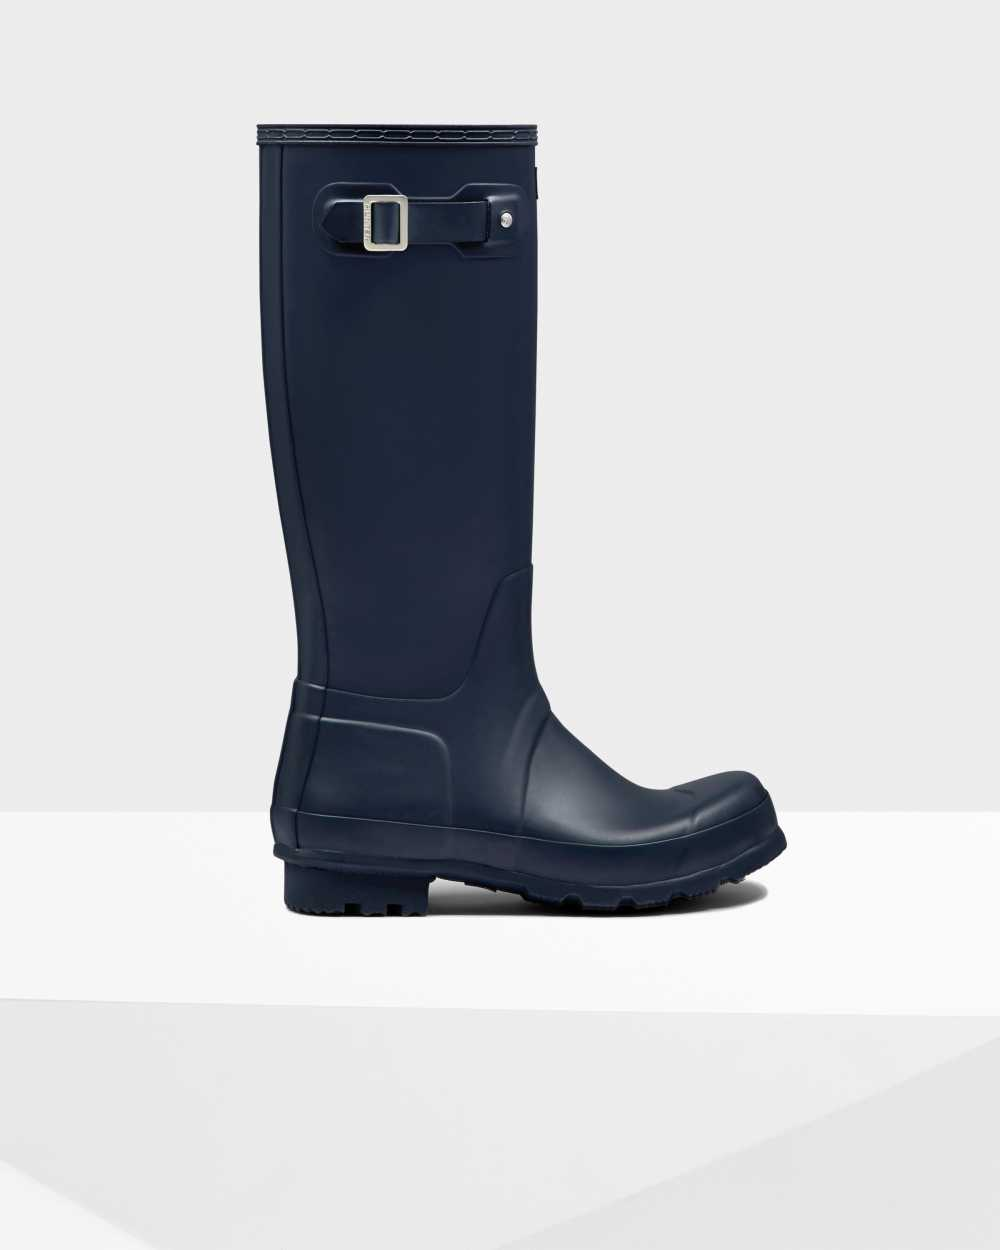 Hunter Original Mens Tall Wellington Rain Boots In Navy Australia (GFYH-14027)